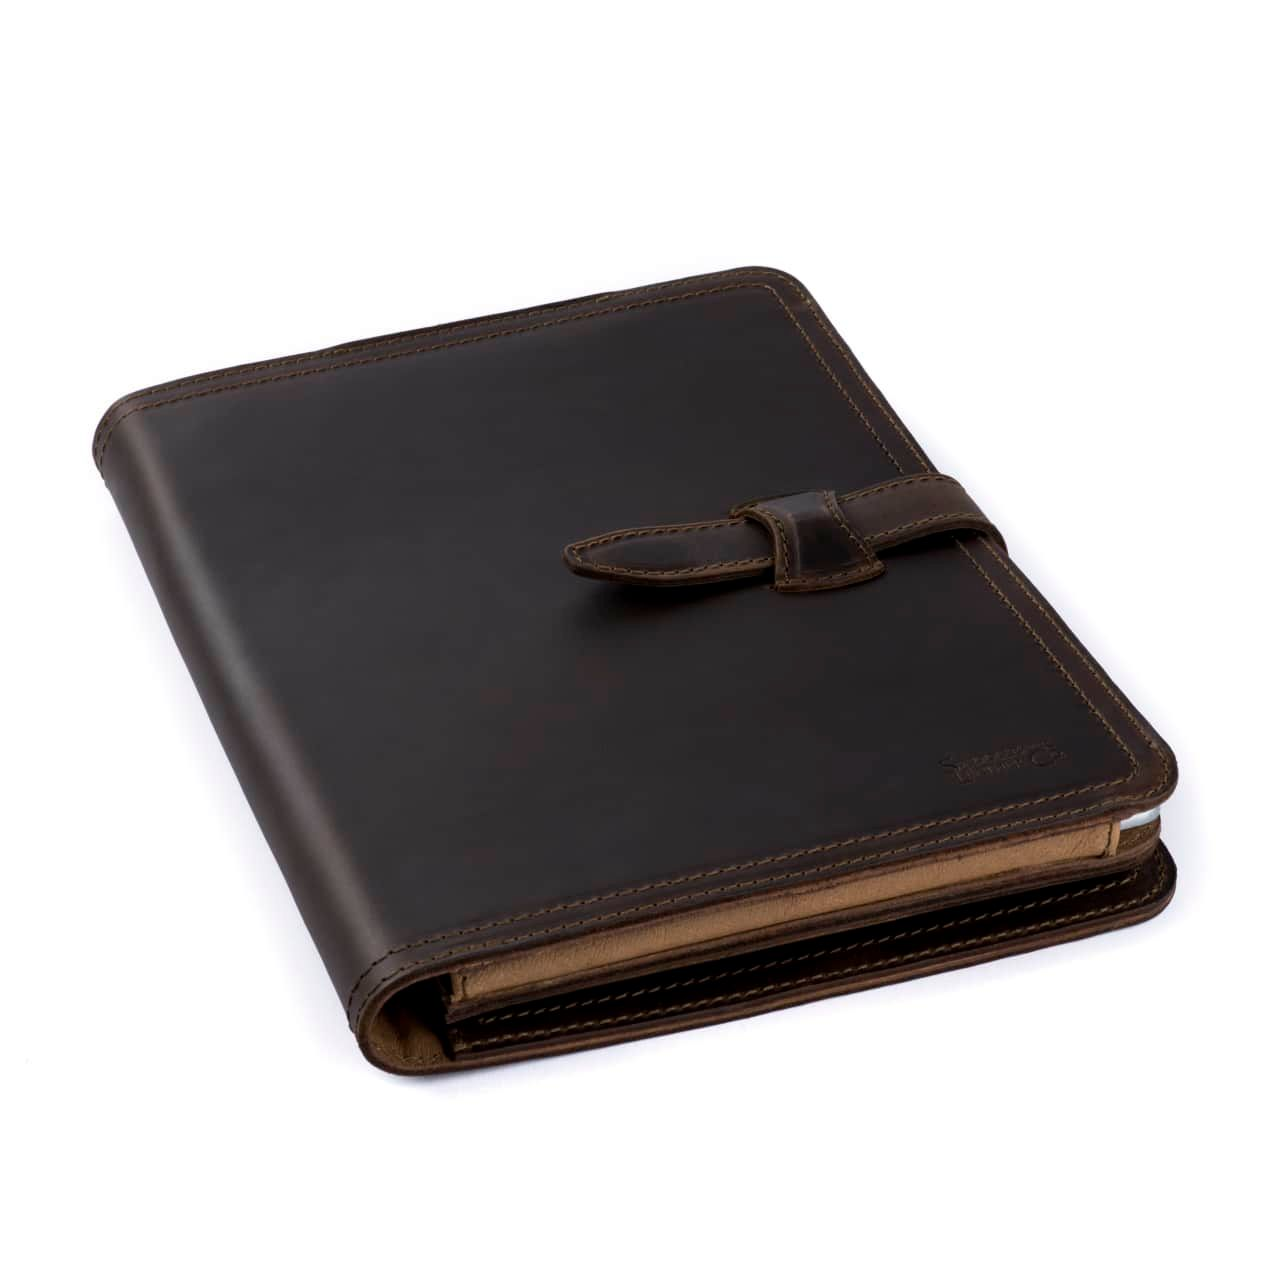 Leather Tablet Notepad Holder Closed in the color Dark Coffee Brown